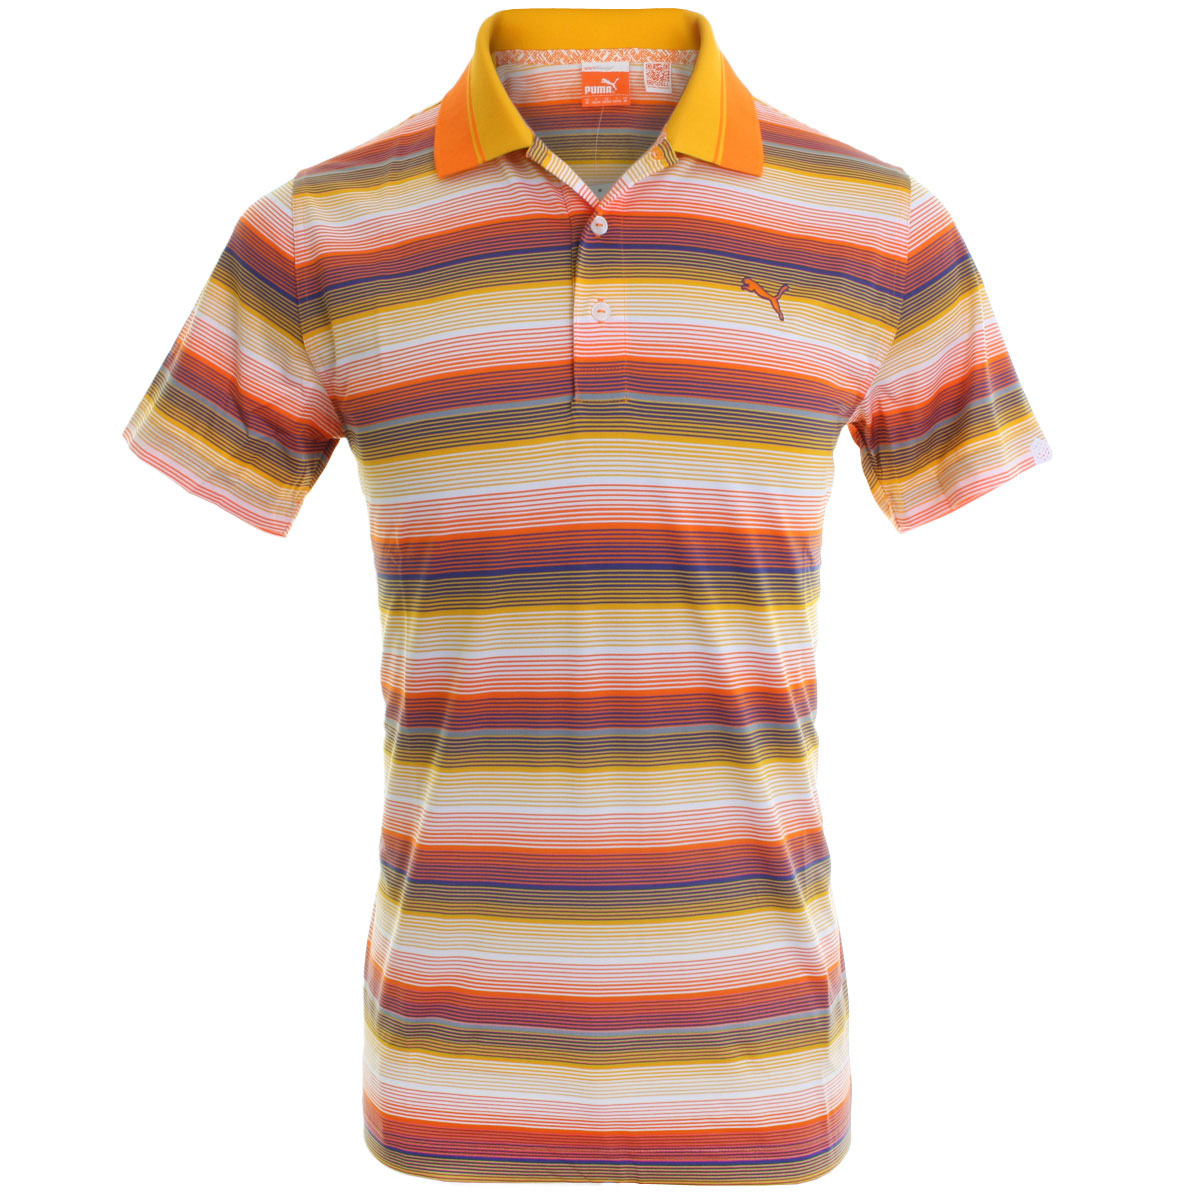 Puma golf 2014 mens road map stripe polo shirt ebay for Mens puma golf shirts